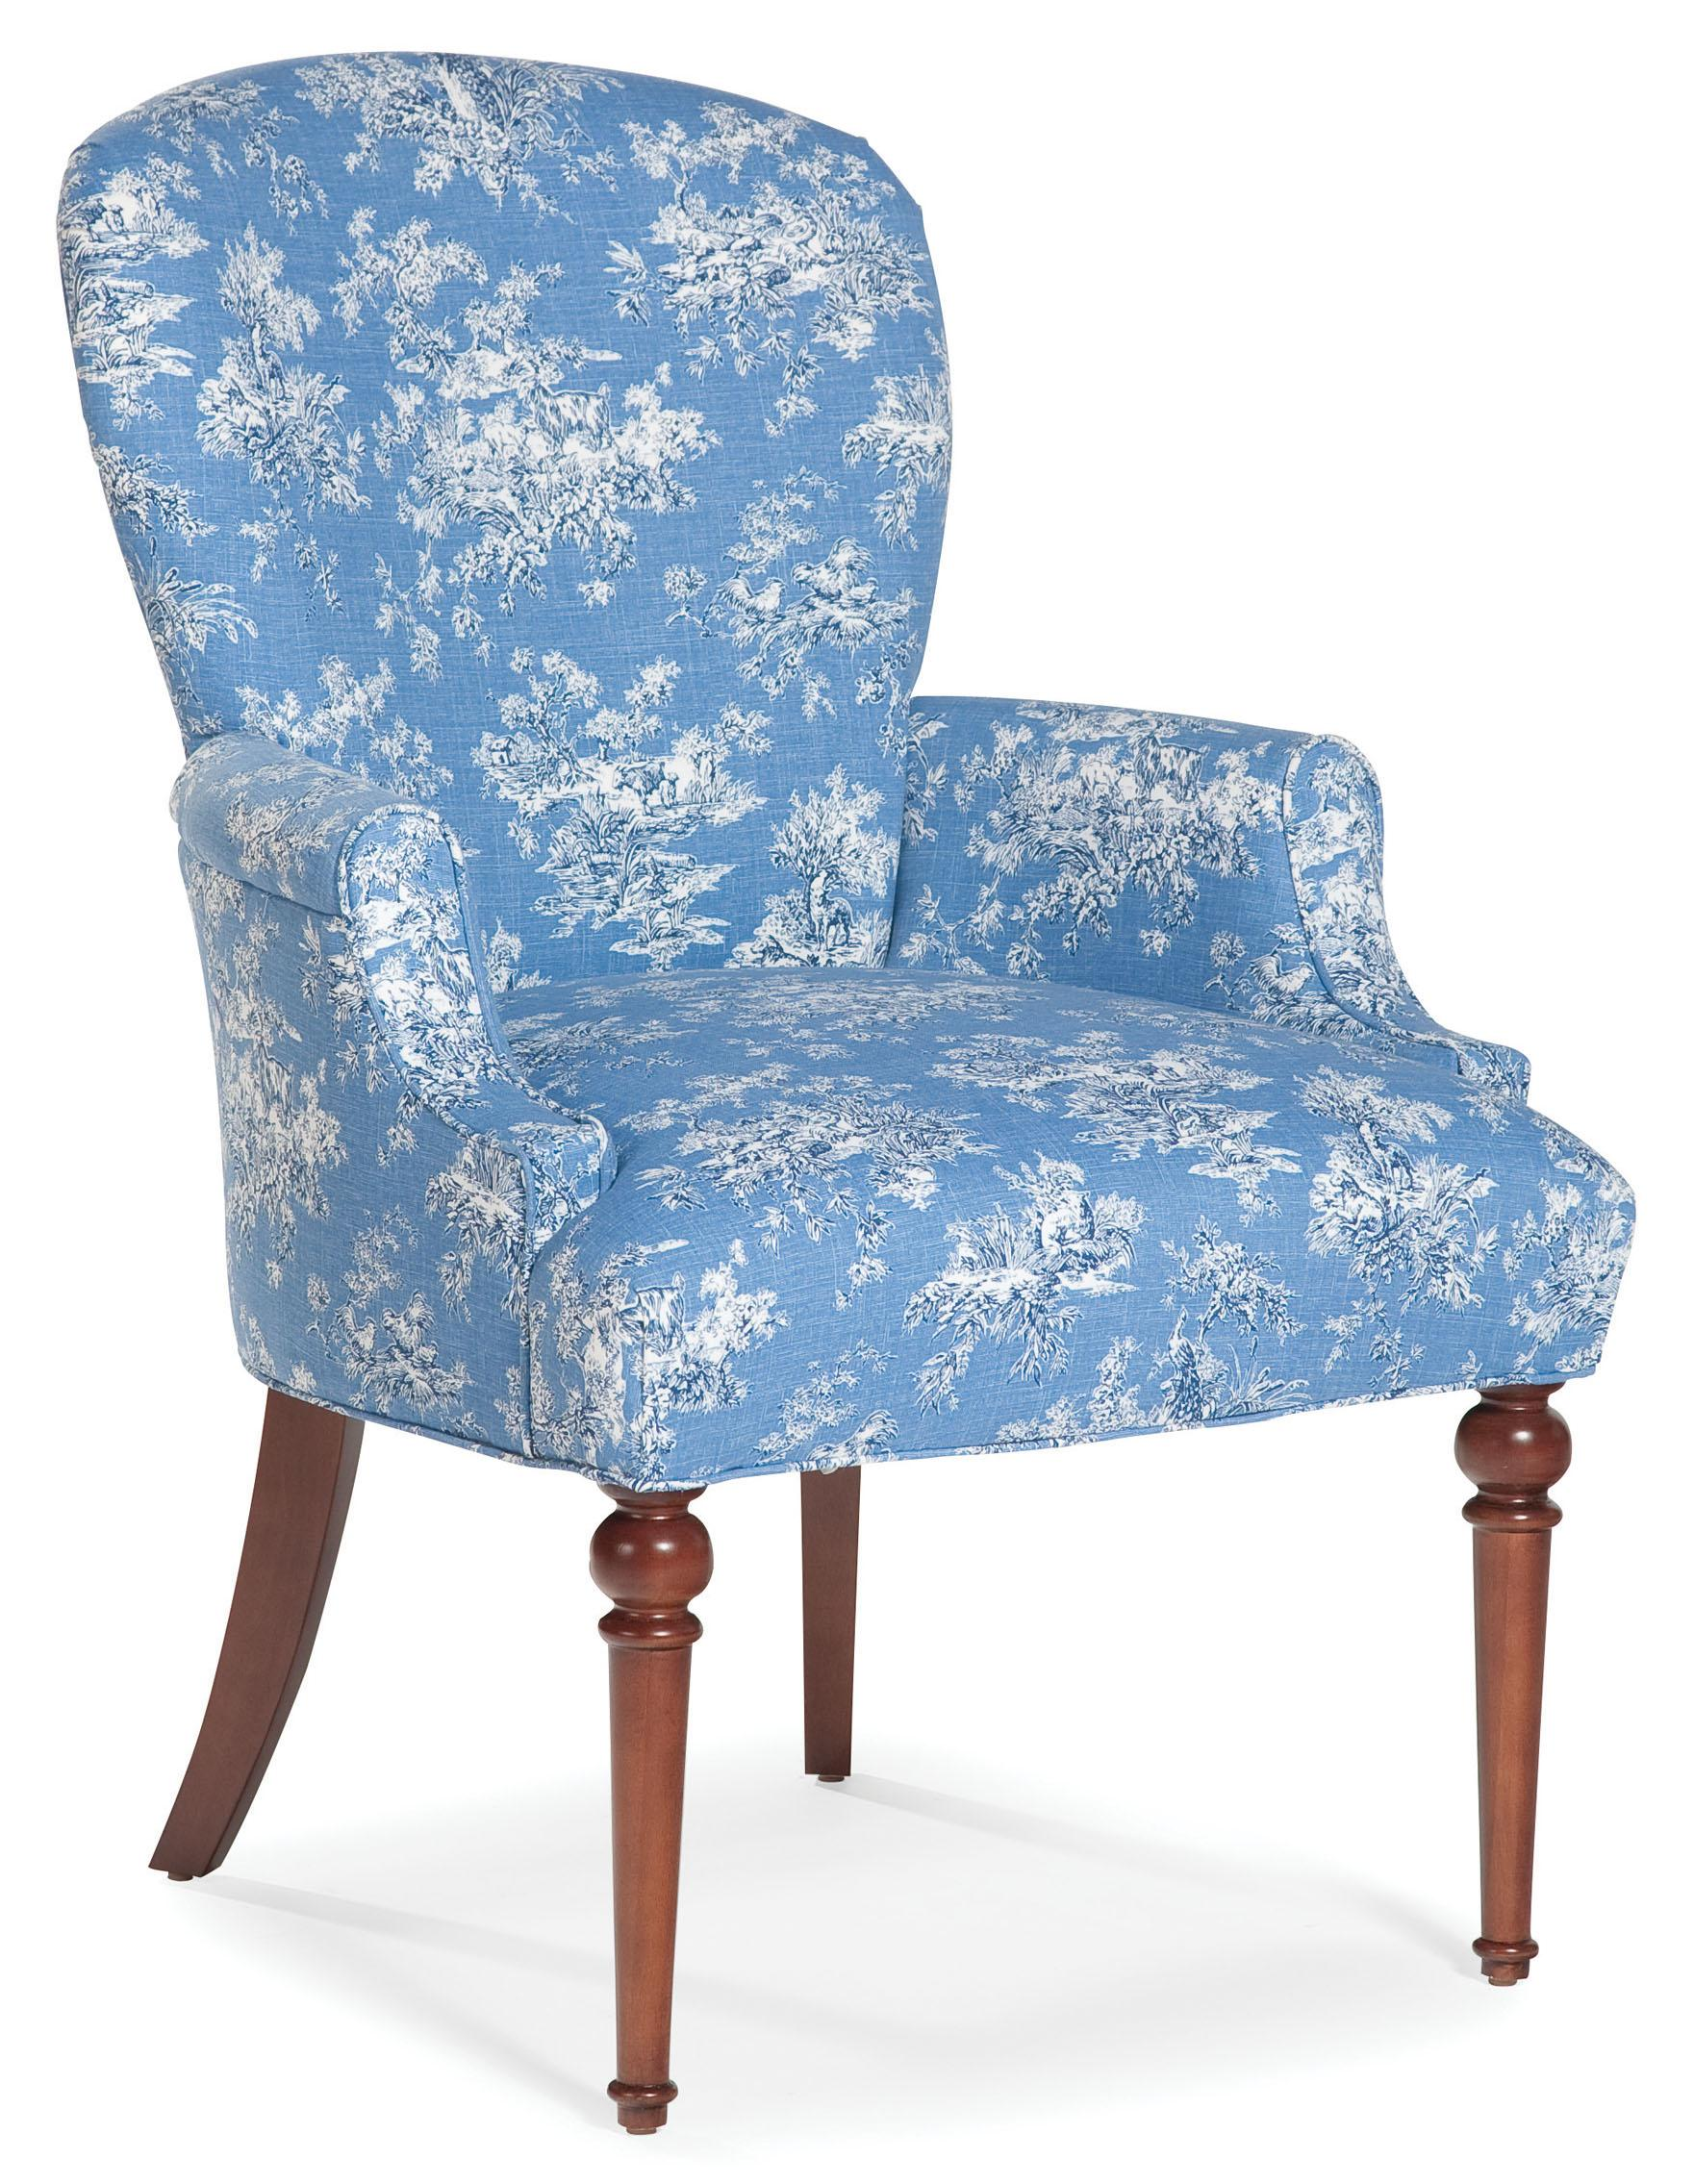 Fairfield Chairs Upholstered Chair - Item Number: 5196-01